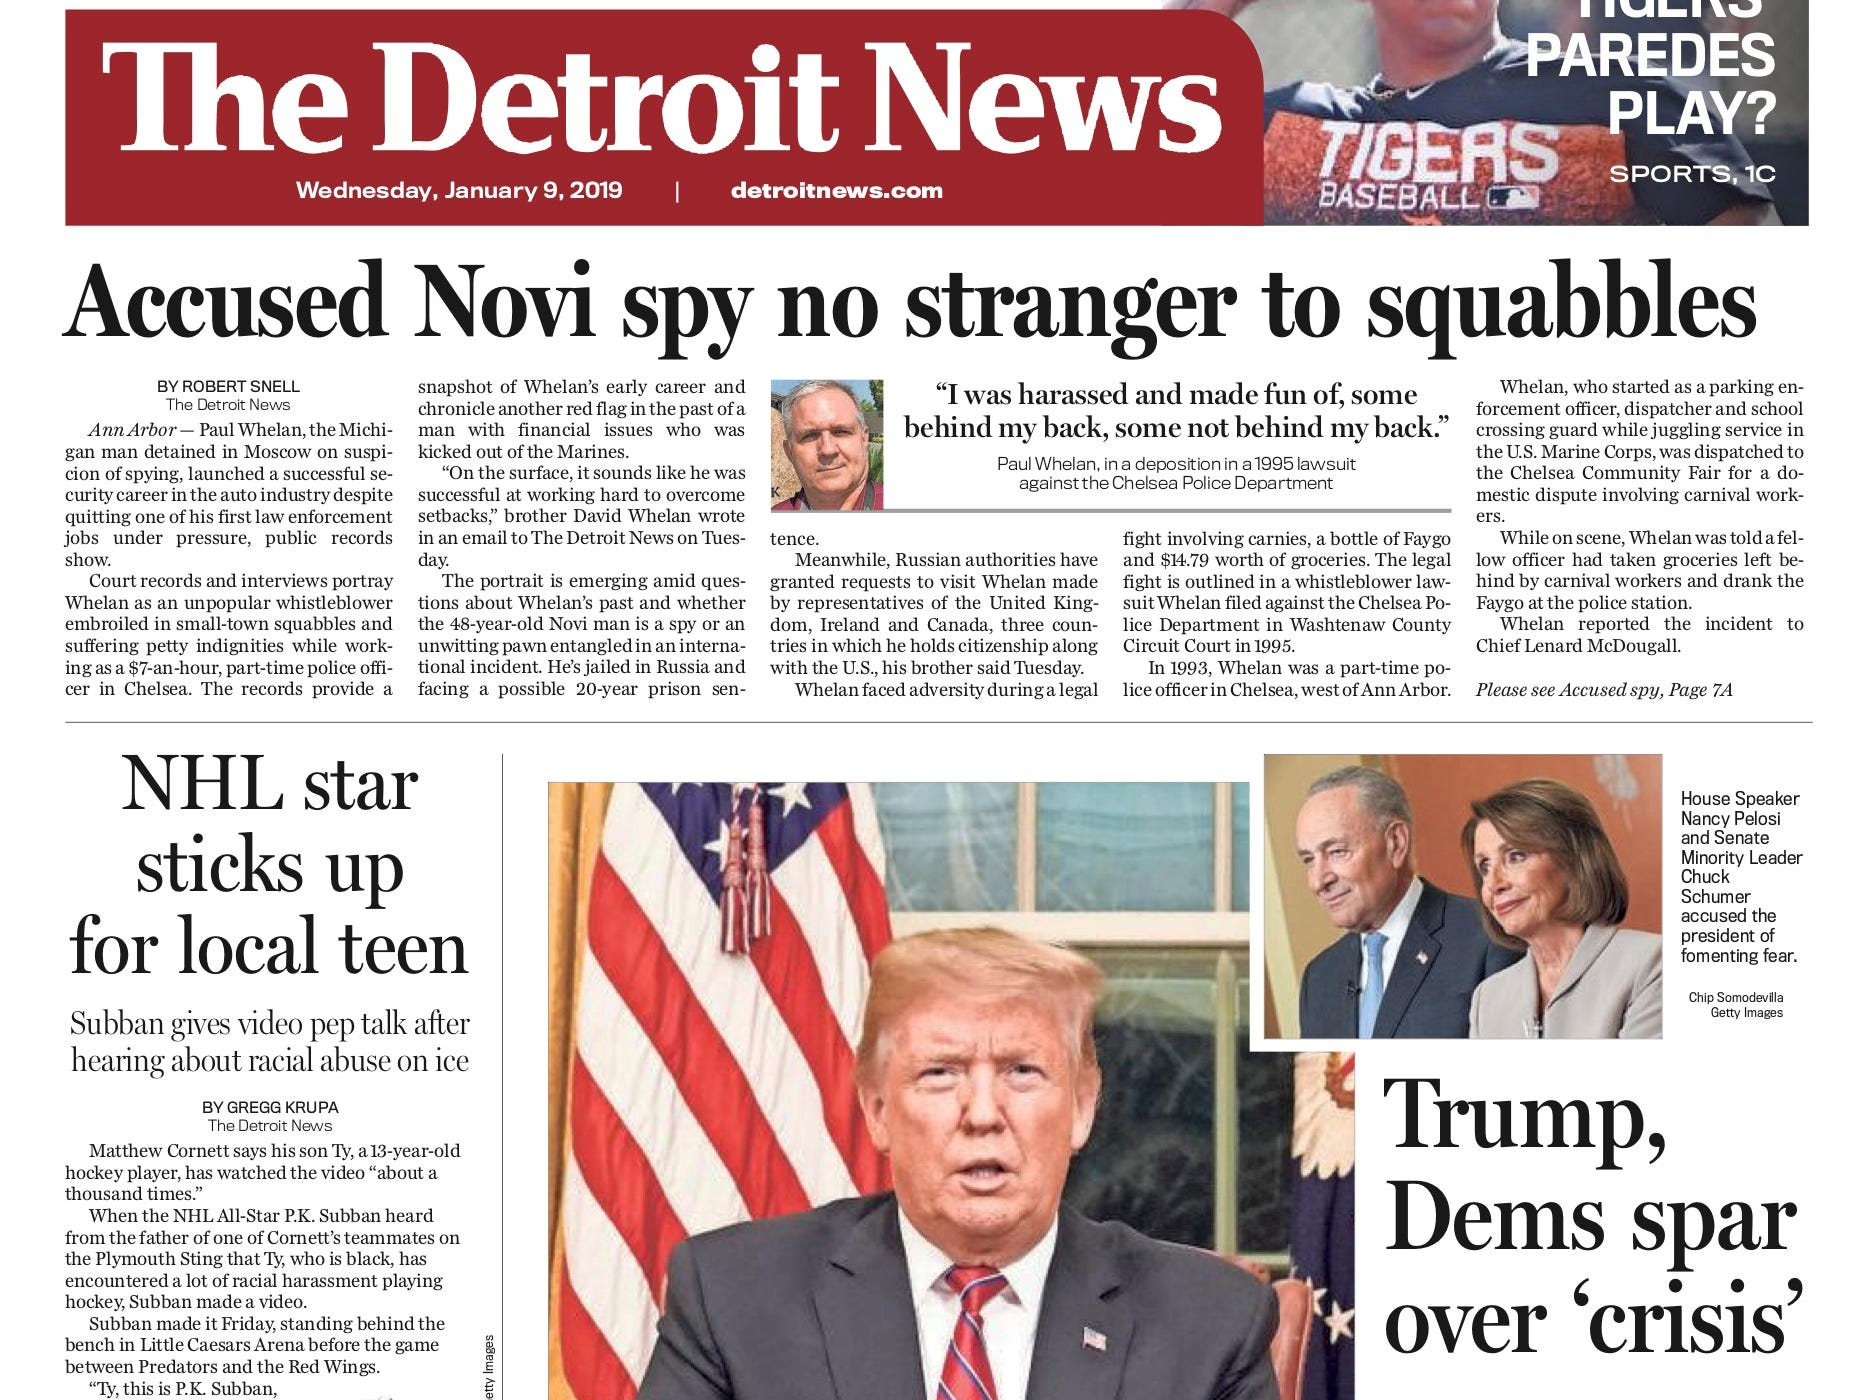 The front page of the Detroit News on January 9, 2019.